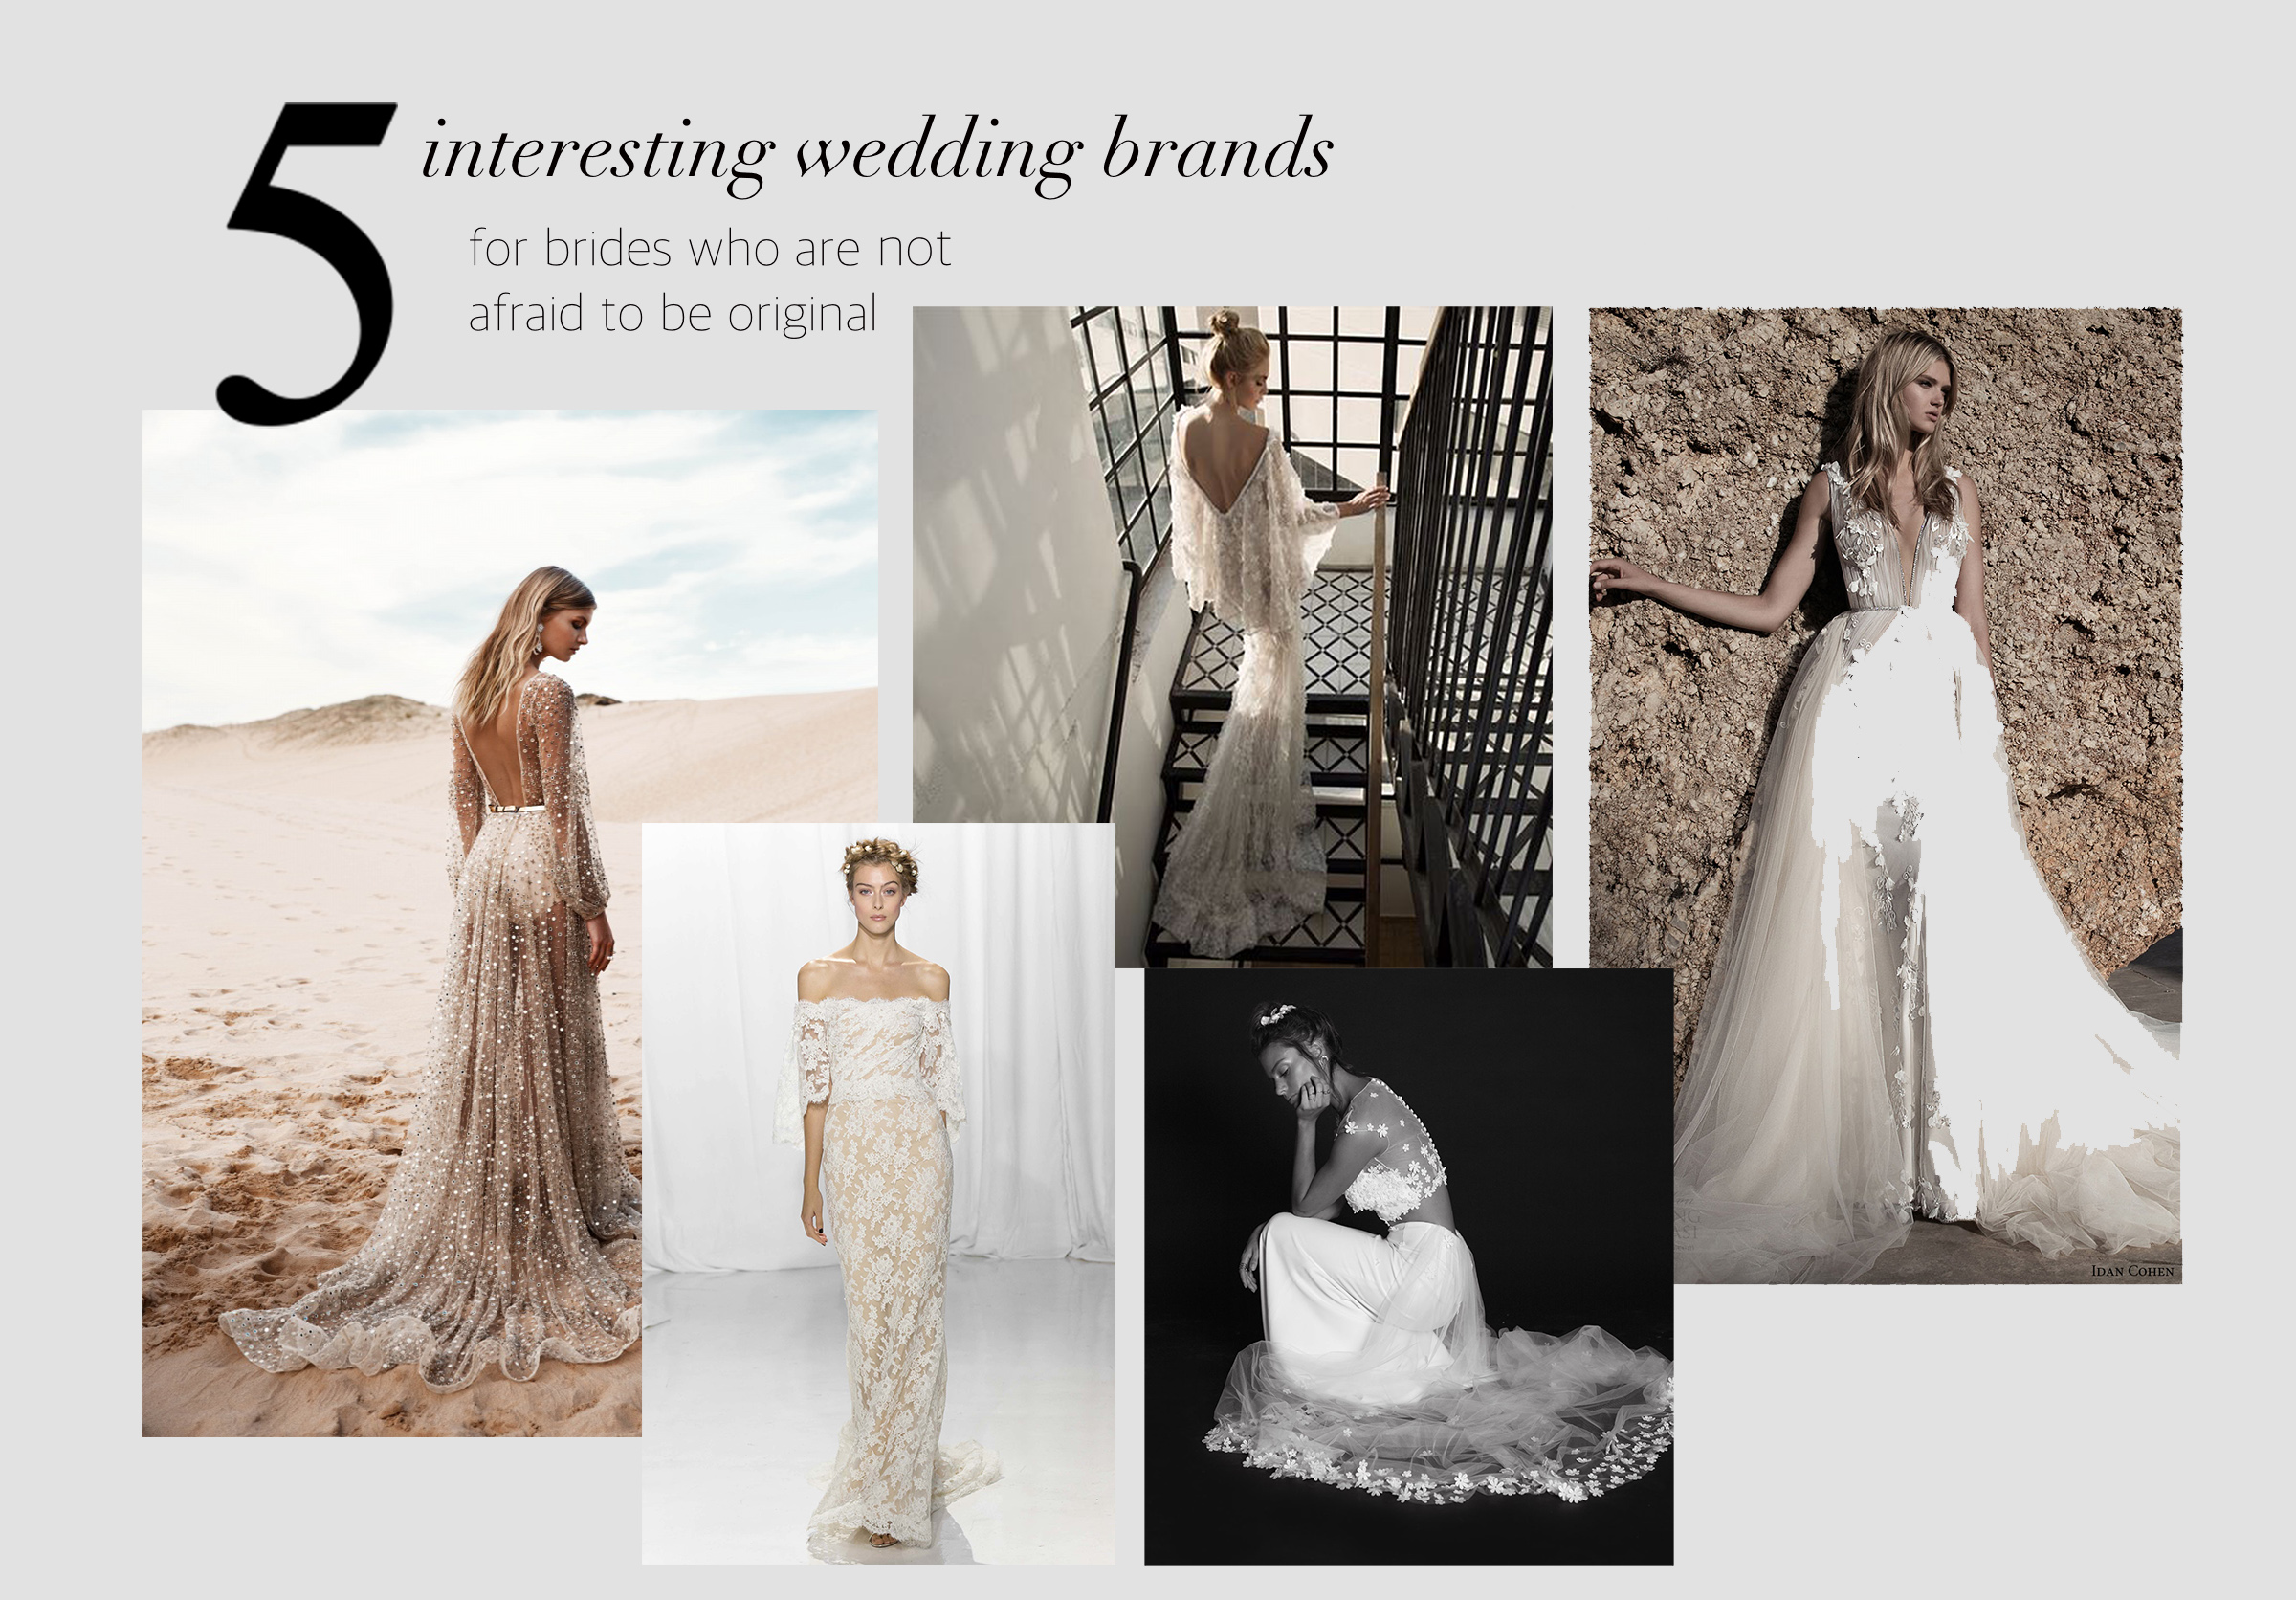 5 wedding brands that you didn't know about yet